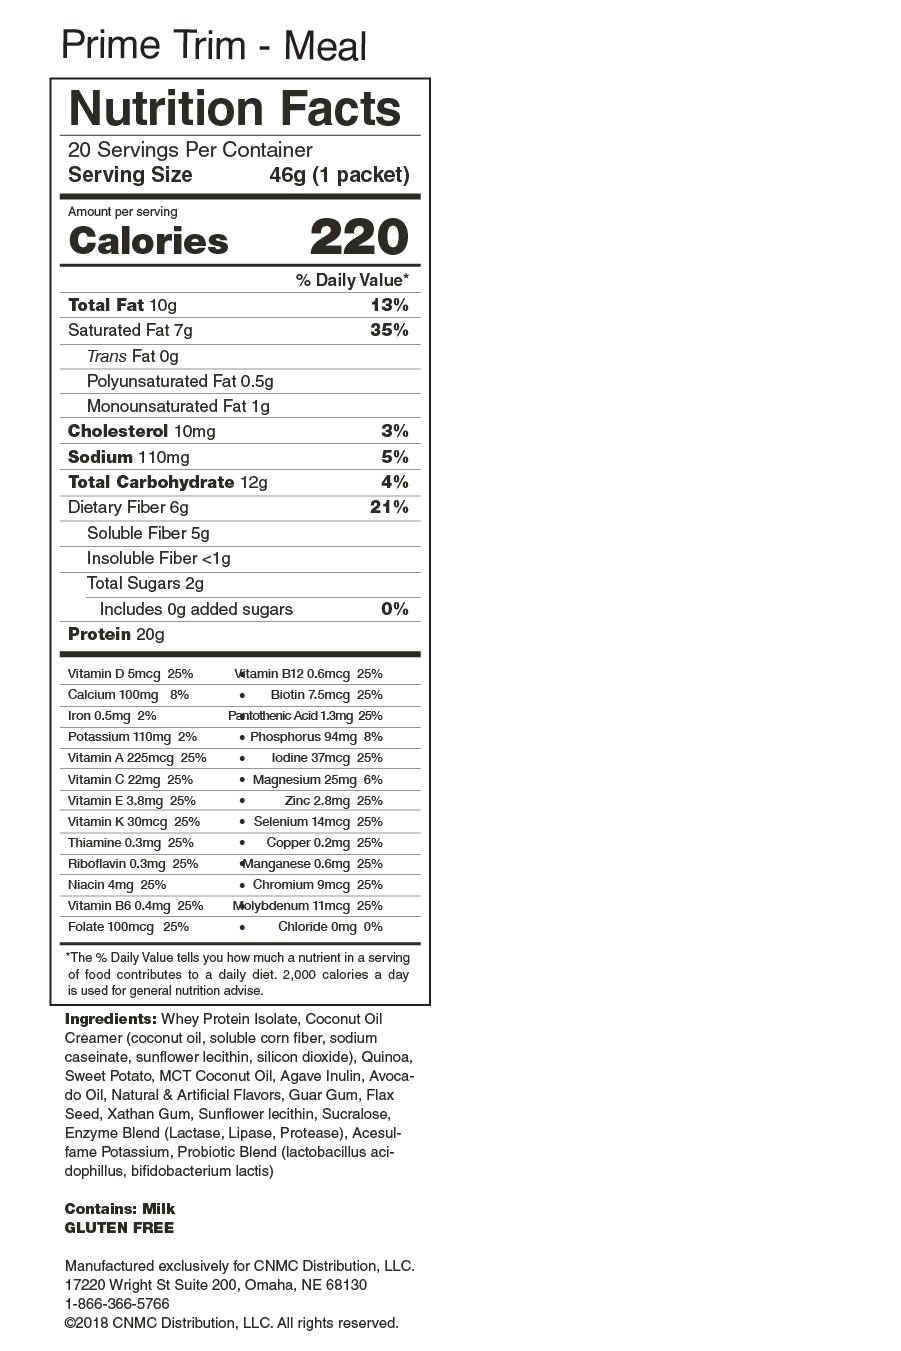 Prime Trim MEAL -Nutrition Facts